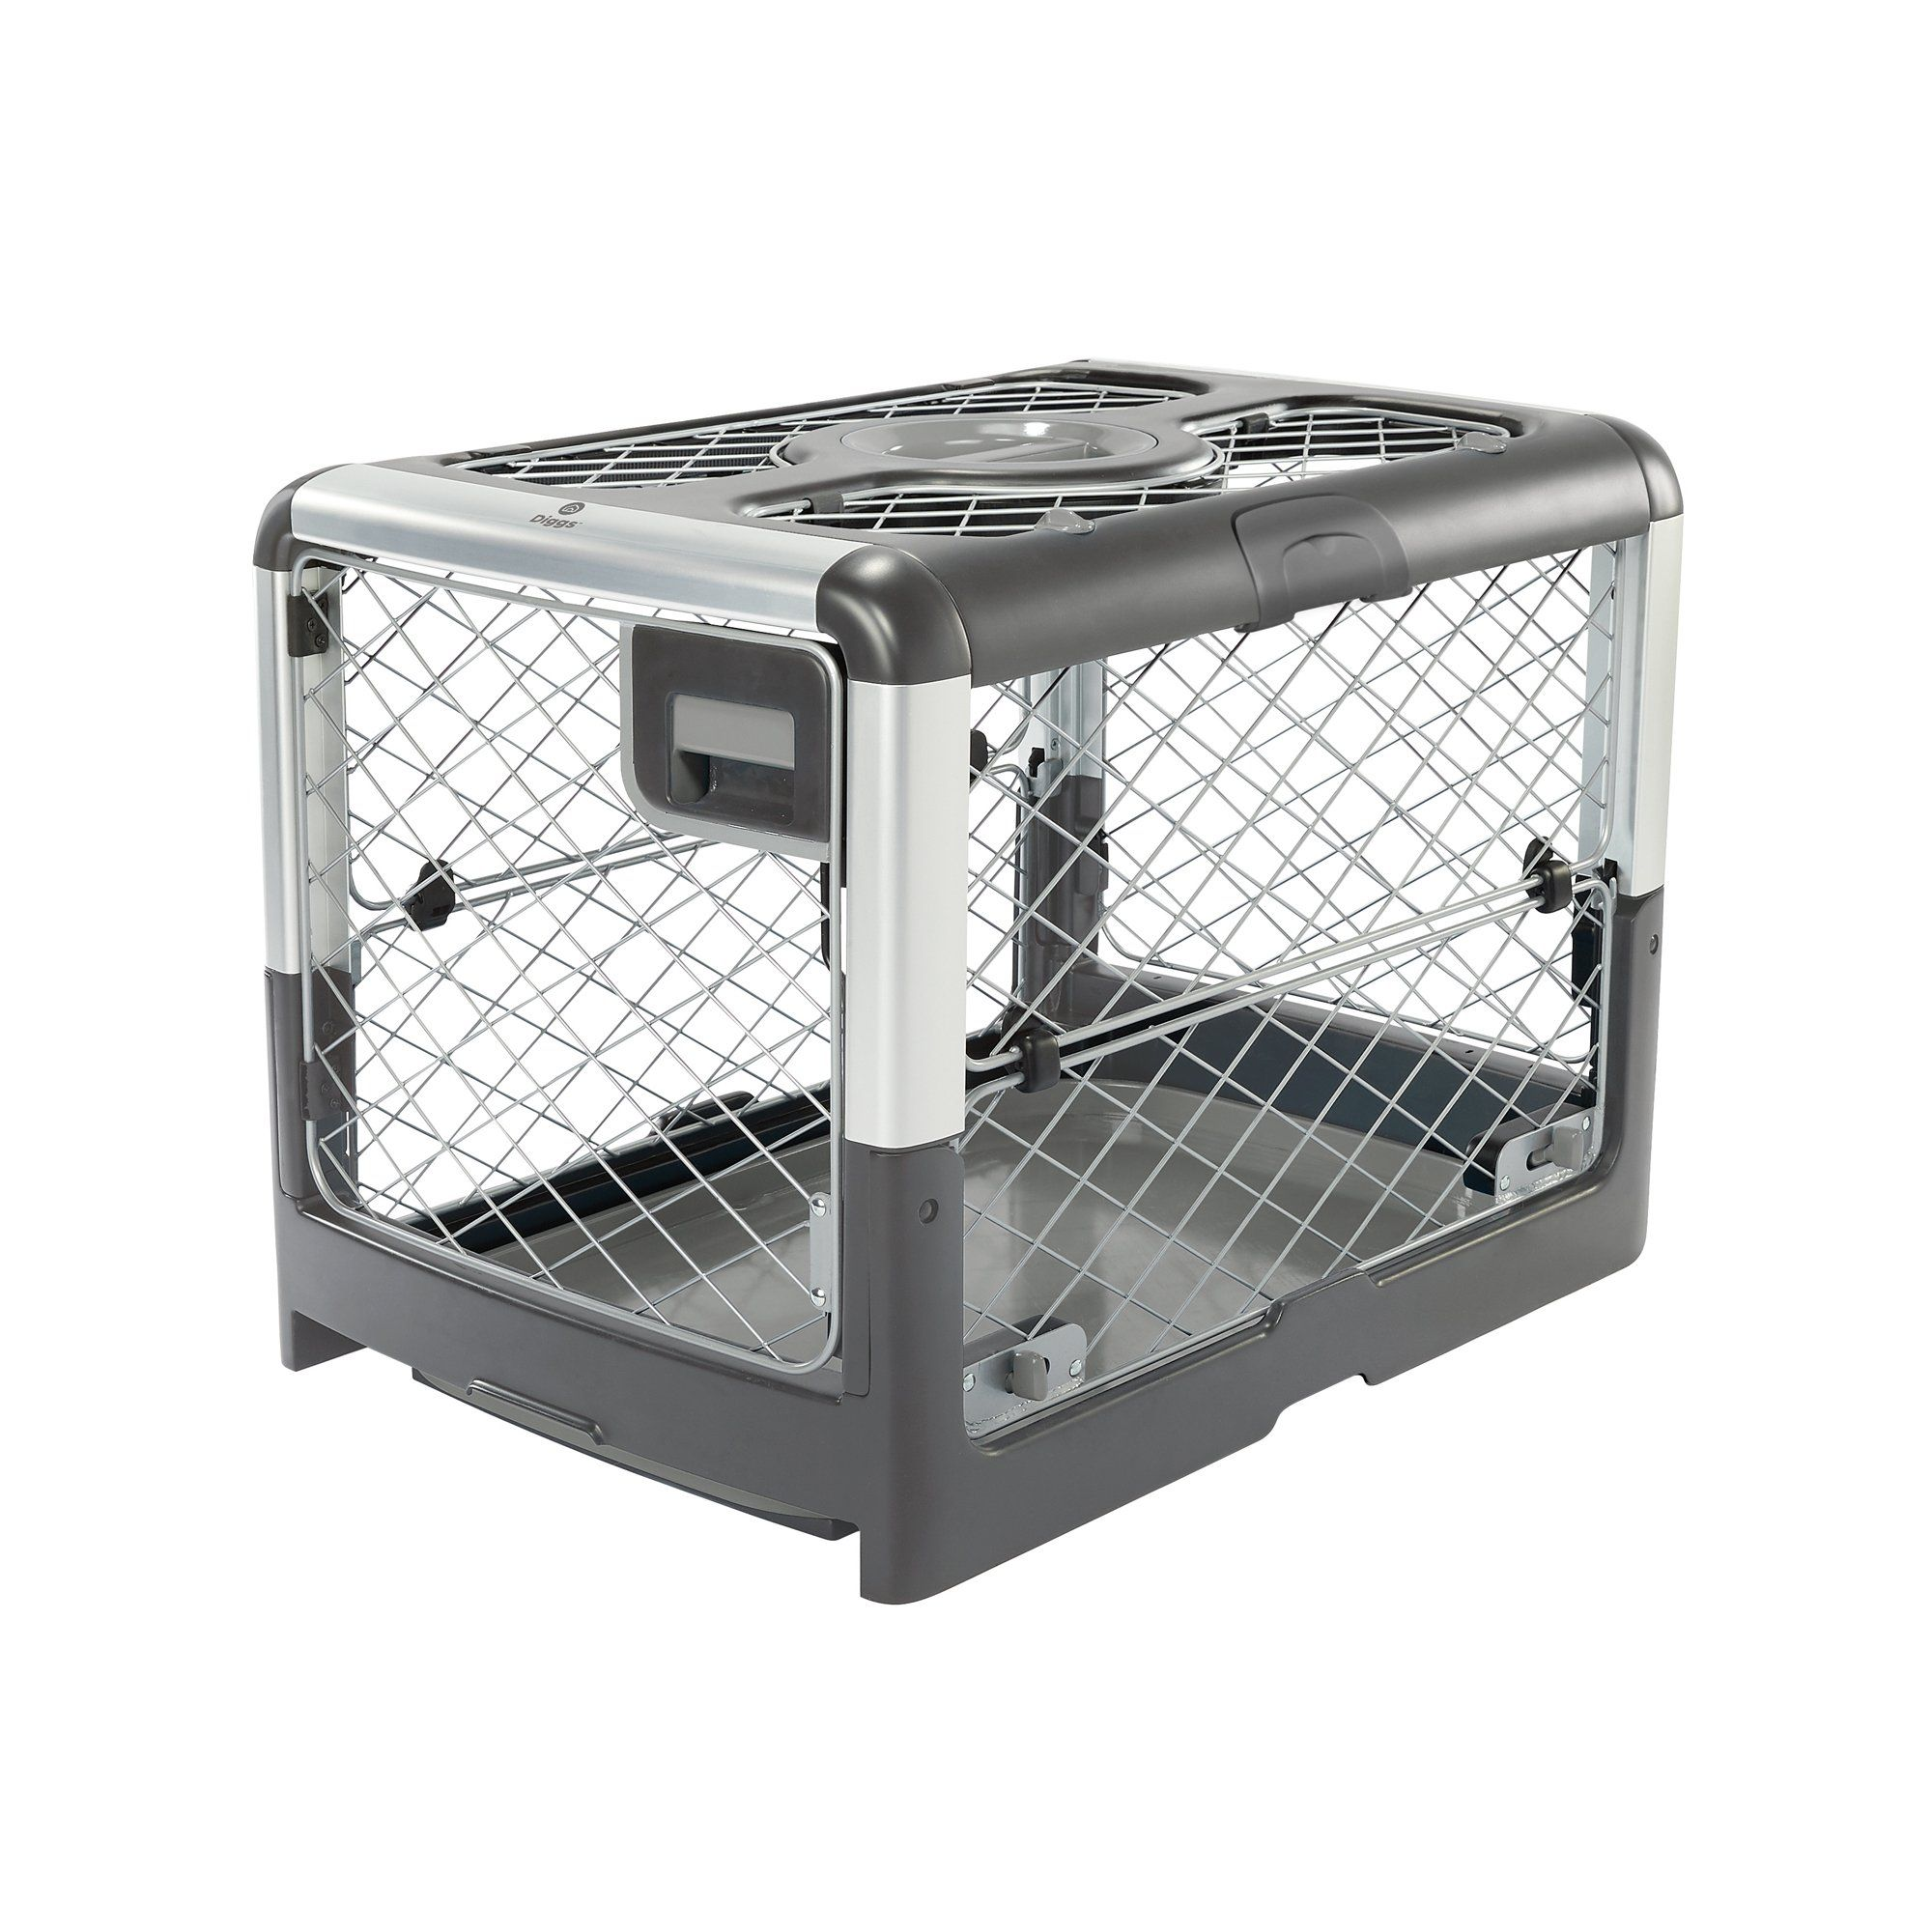 Revol Dog Crate Collapsible Dog Crate Folding Dog Crate